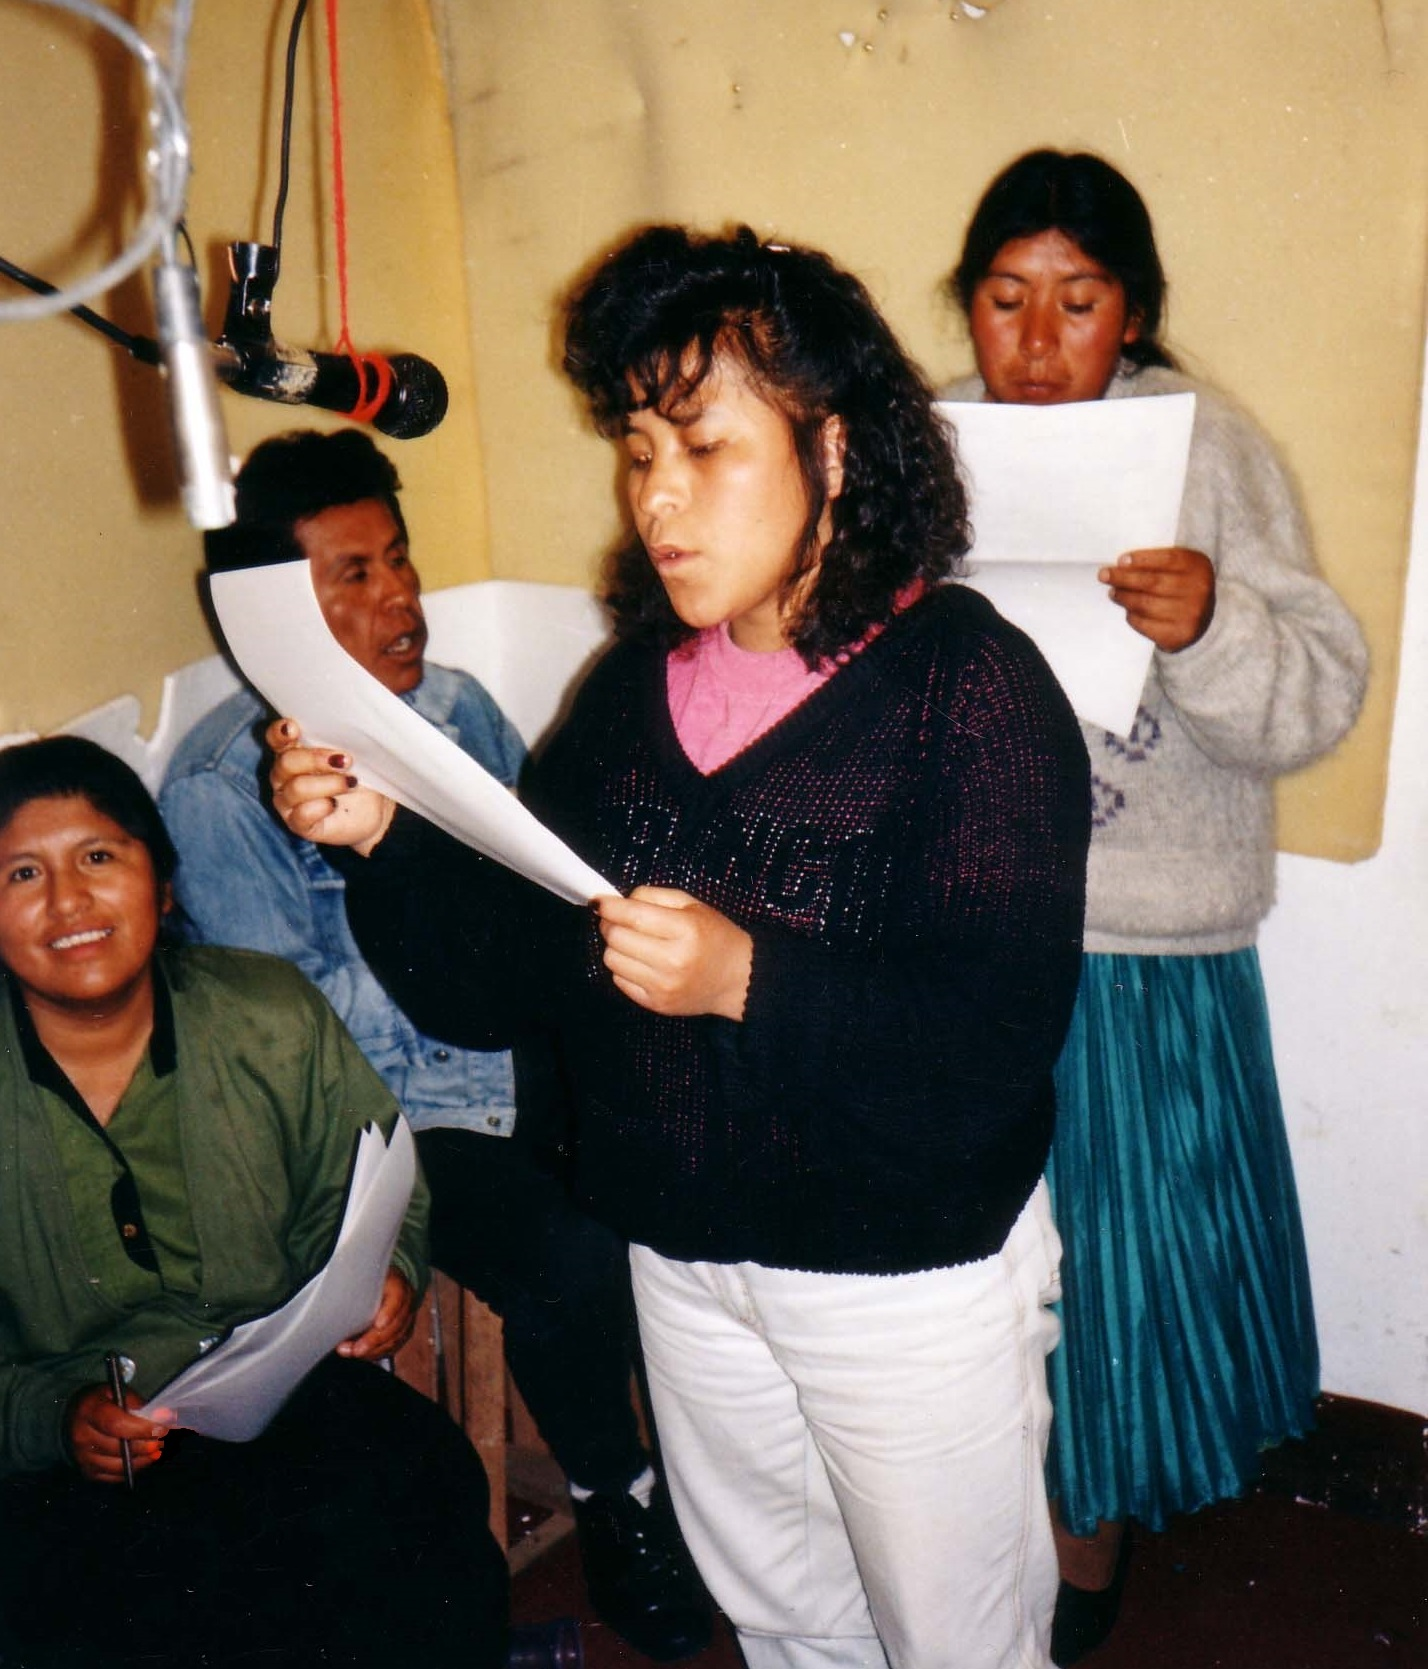 Recording the Tuturani radionovela in the THOA recording studio in 1991, with Valentina Jacha Collo (center, at the microphone), María Eugenia Choque (left), and Nicanor Huanta and Lucia Quispe (back). Courtesy of the Andean Oral History Workshop.